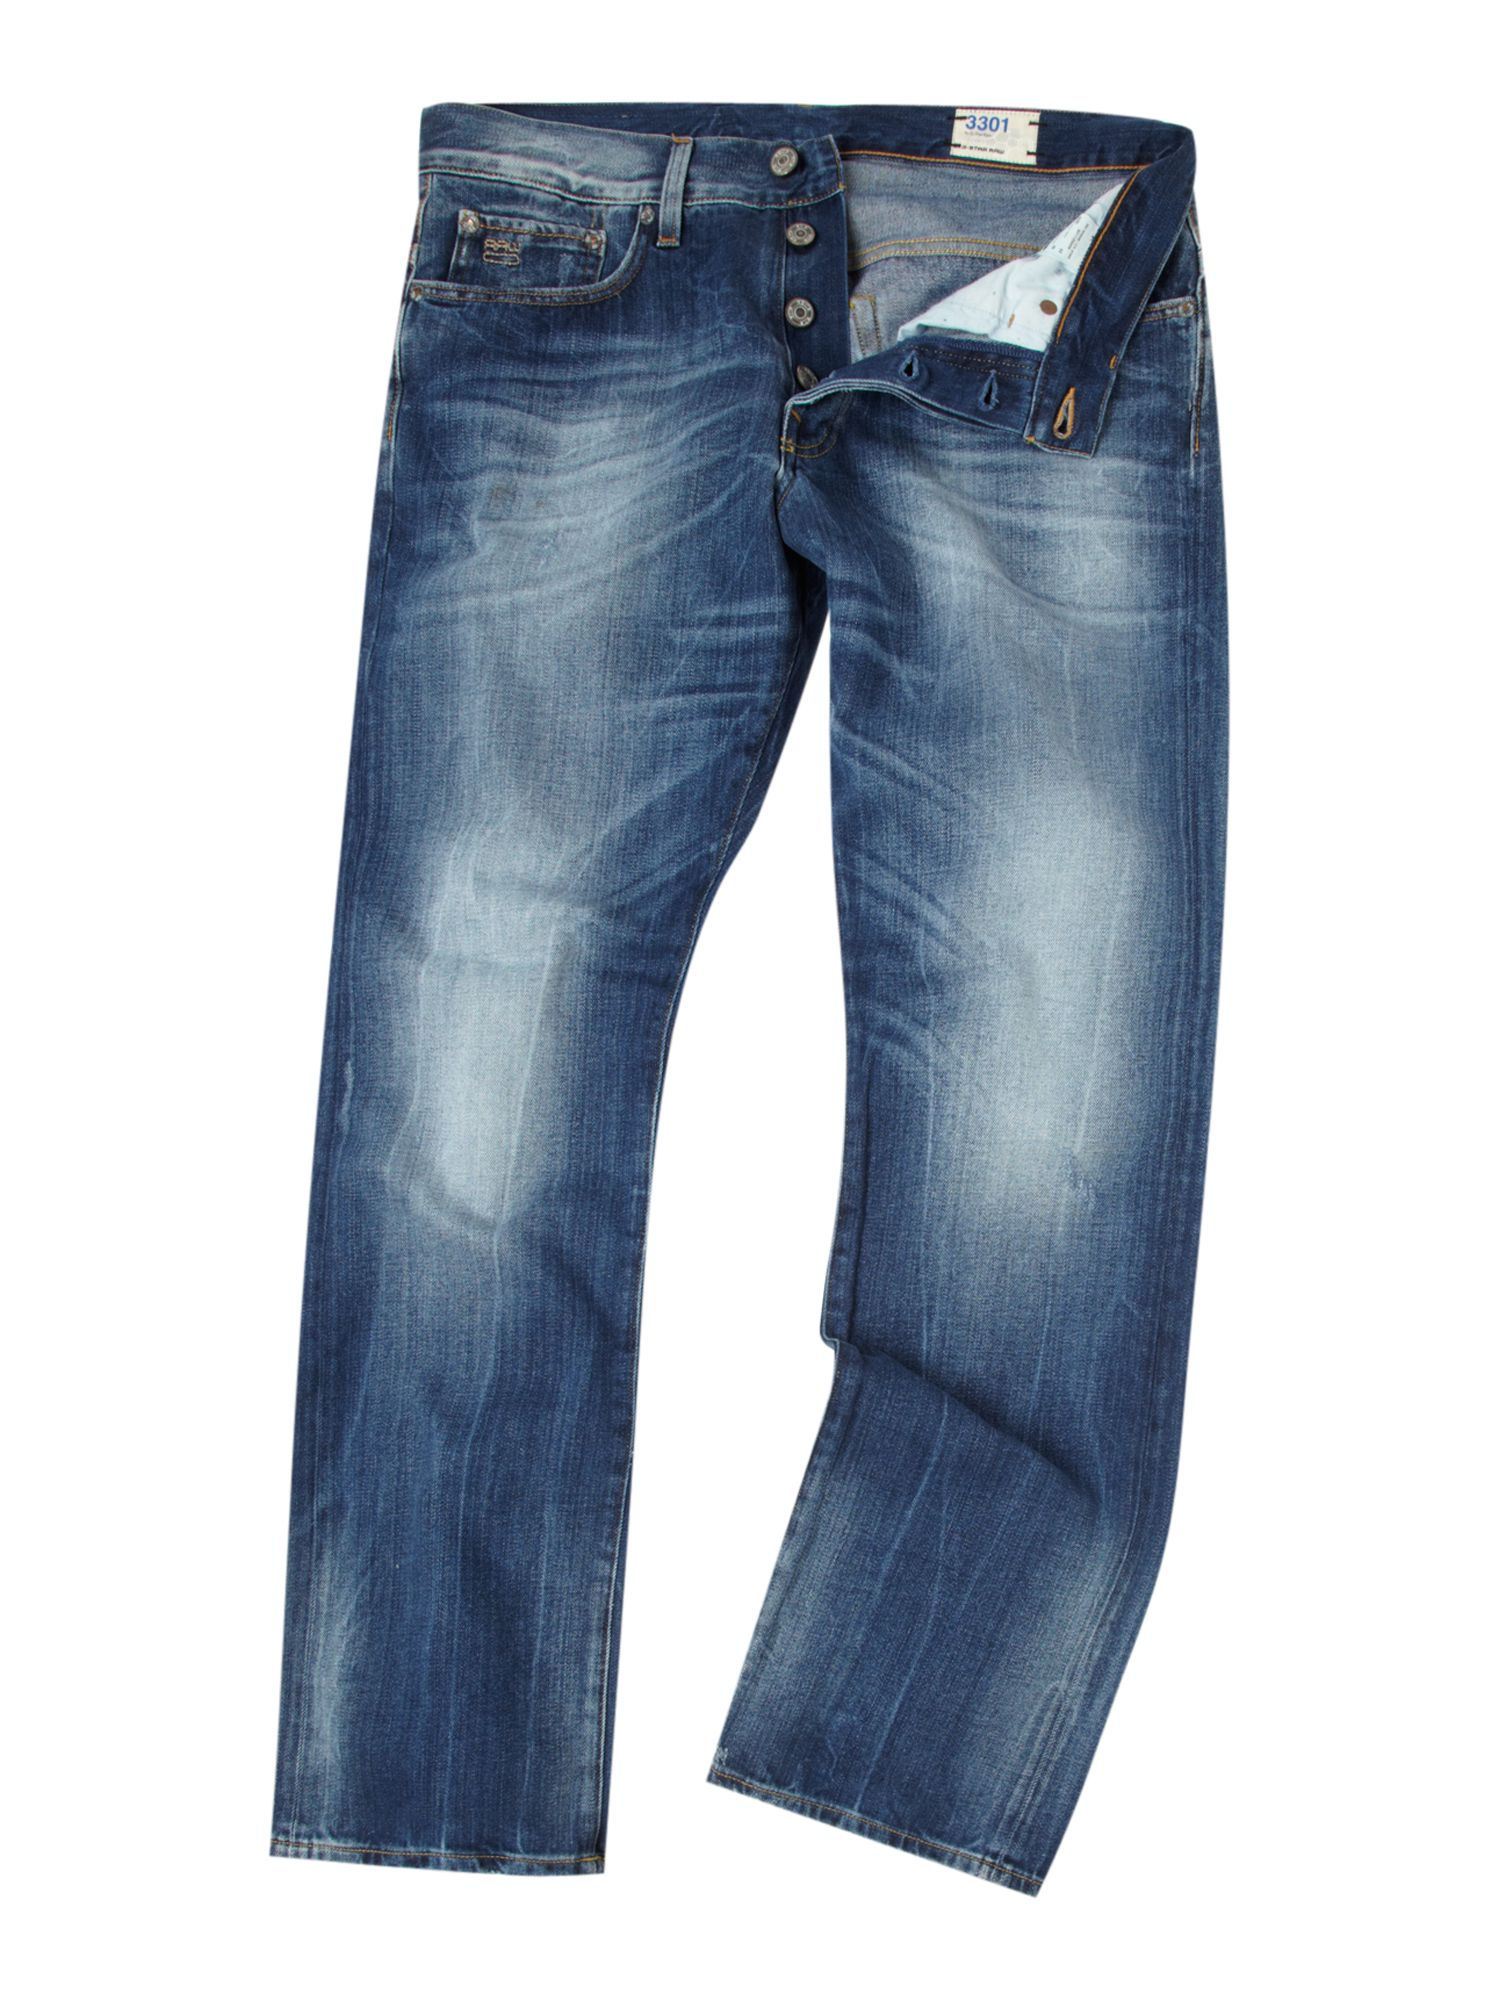 Straight leg mid blue wash jeans